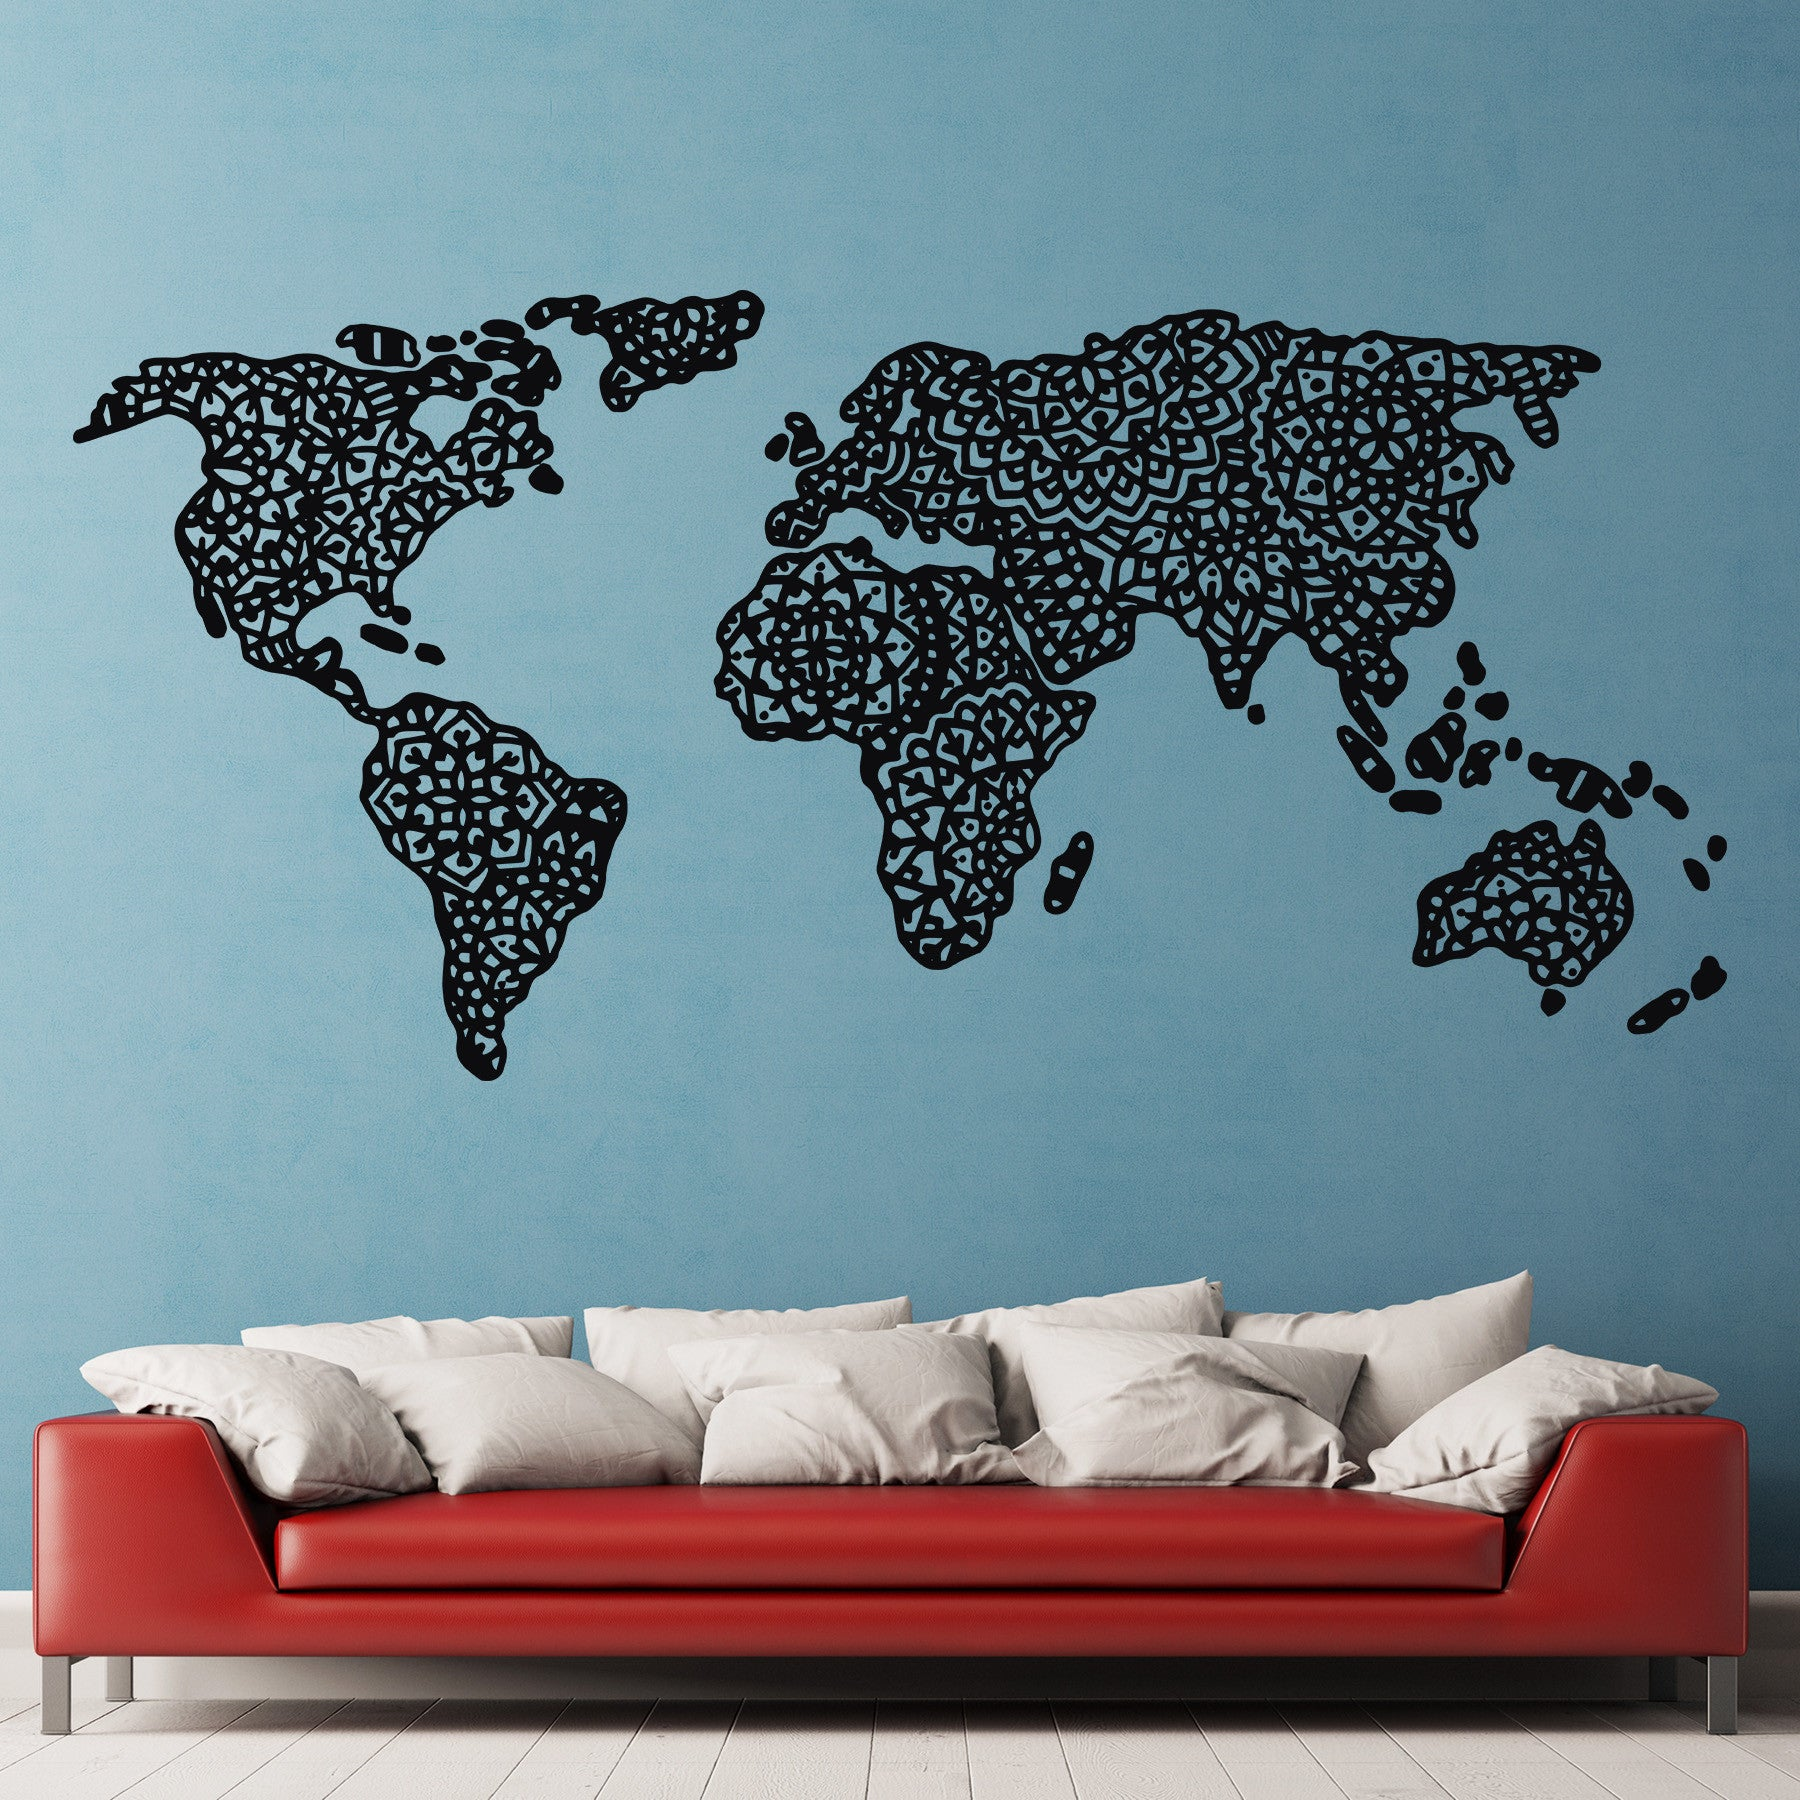 Mandala World Map Vinyl Decal / Wall Decal – Dee cal Frenzy Wall Decor